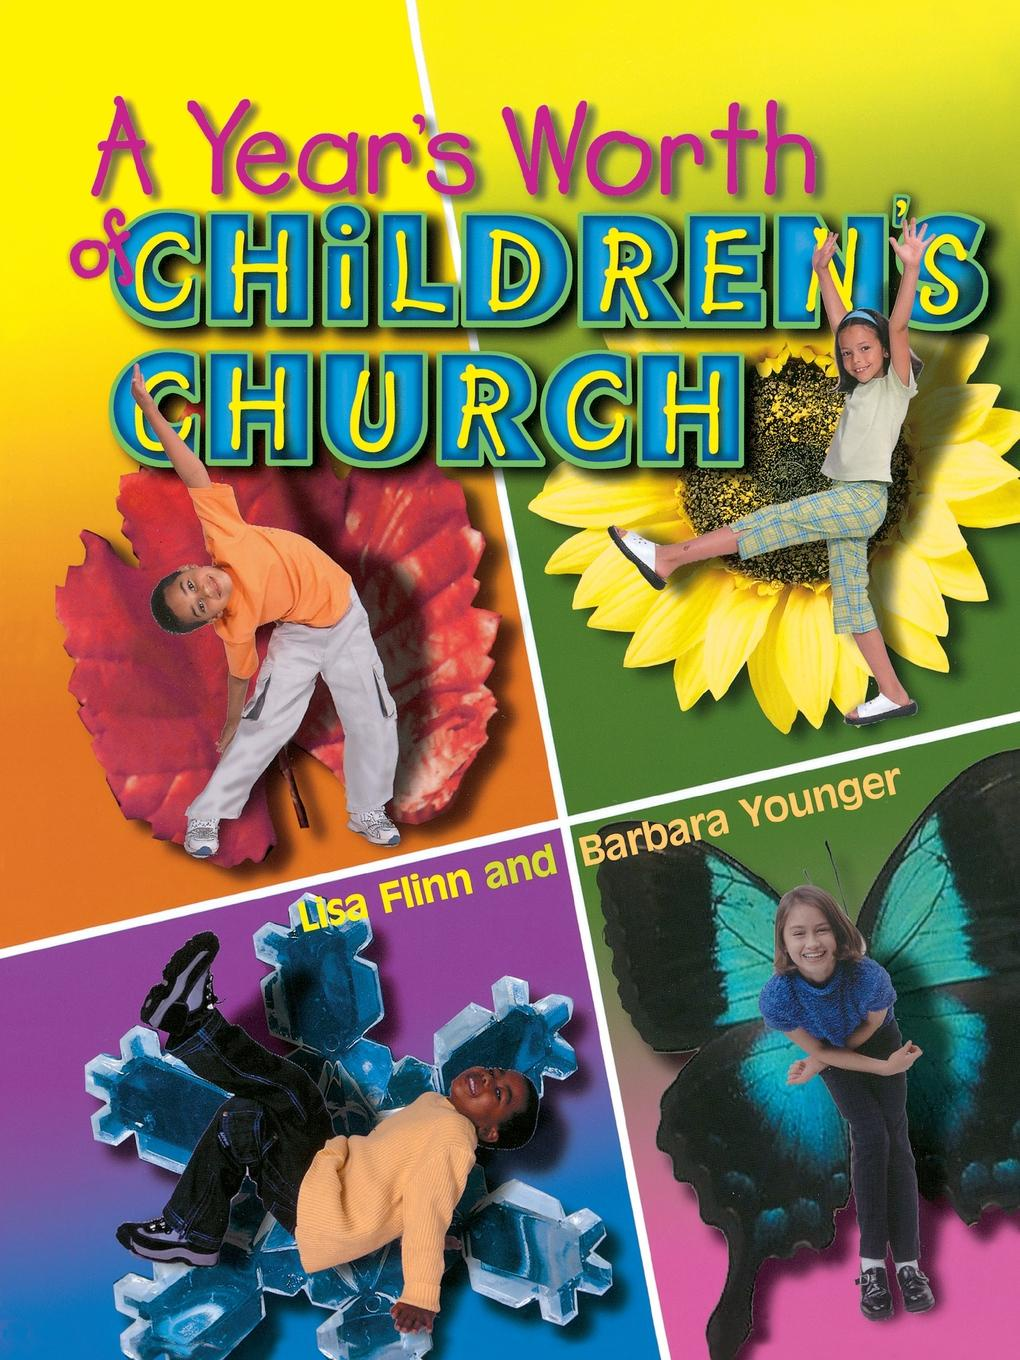 John H. Marks, Virgil M. Rogers, Barbara Younger A Year's Worth of Children's Church church s шарф